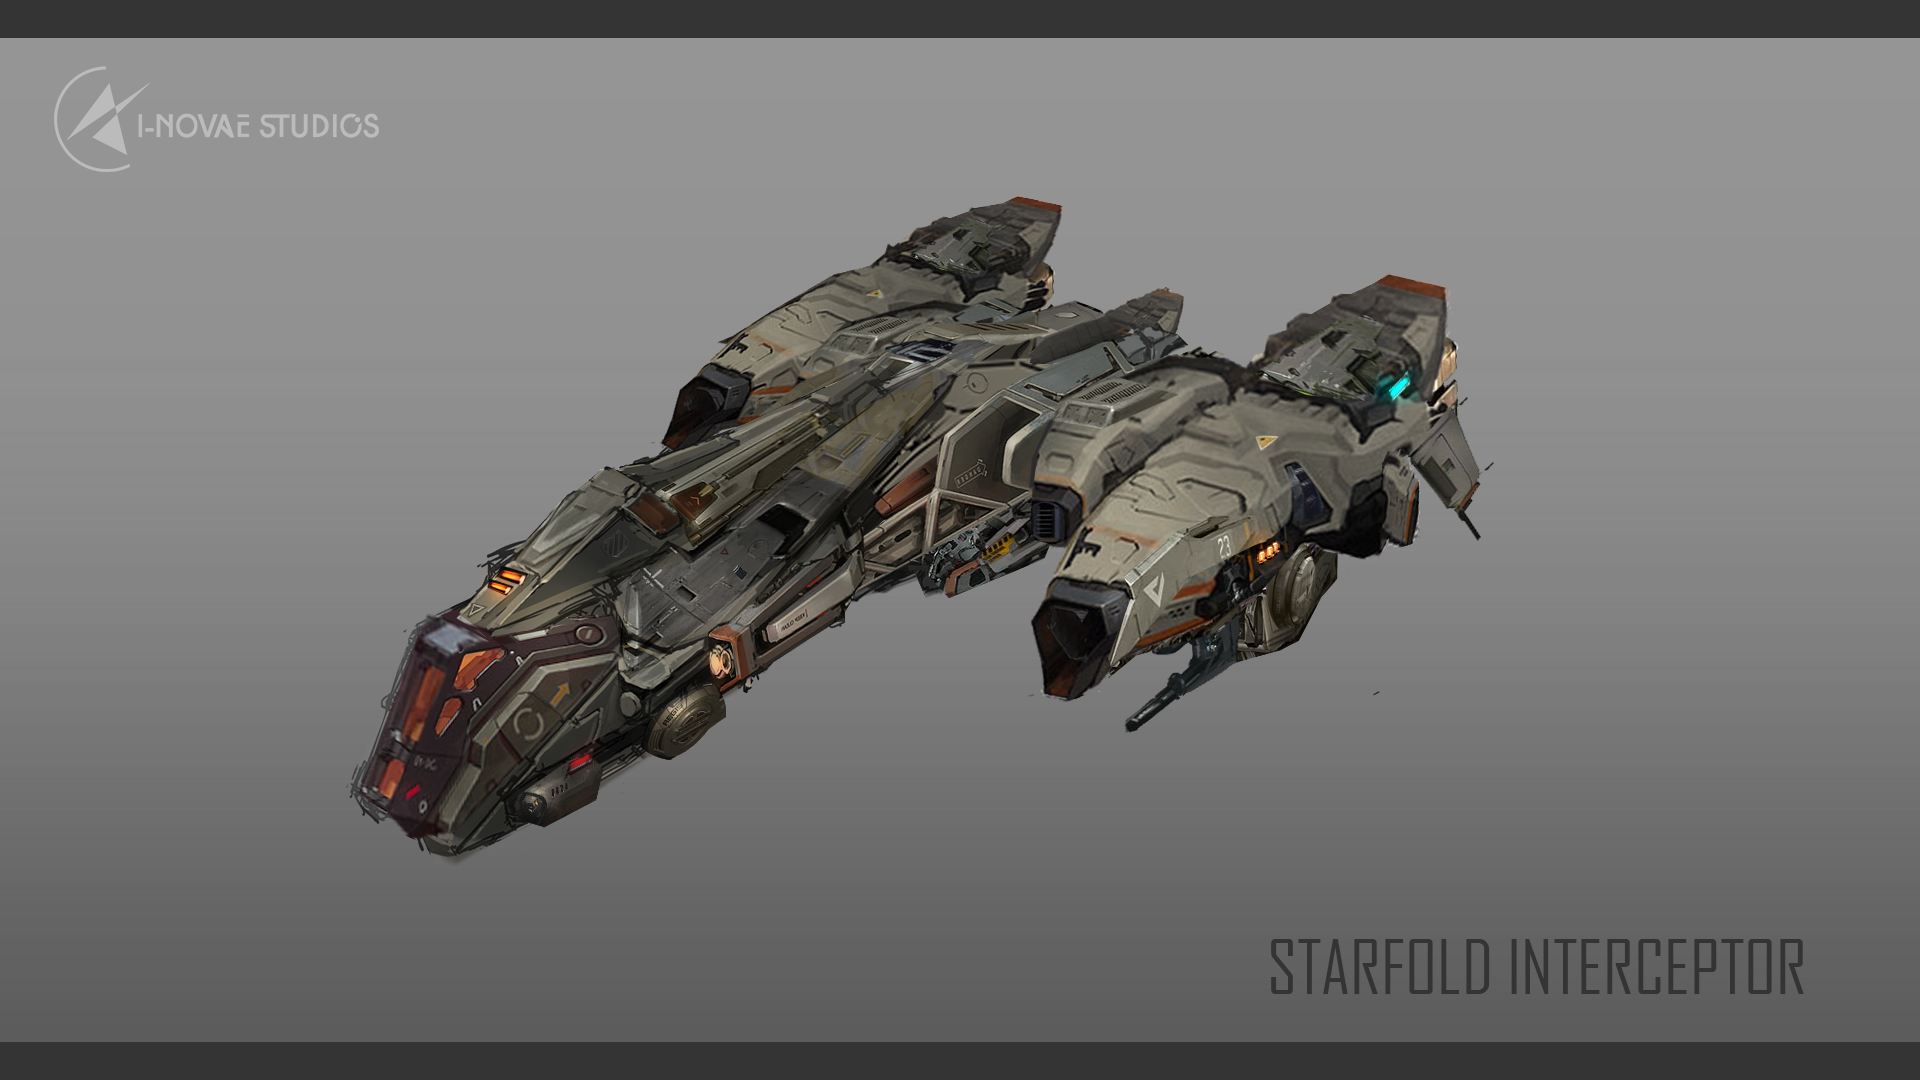 Starfold_Interceptor.png